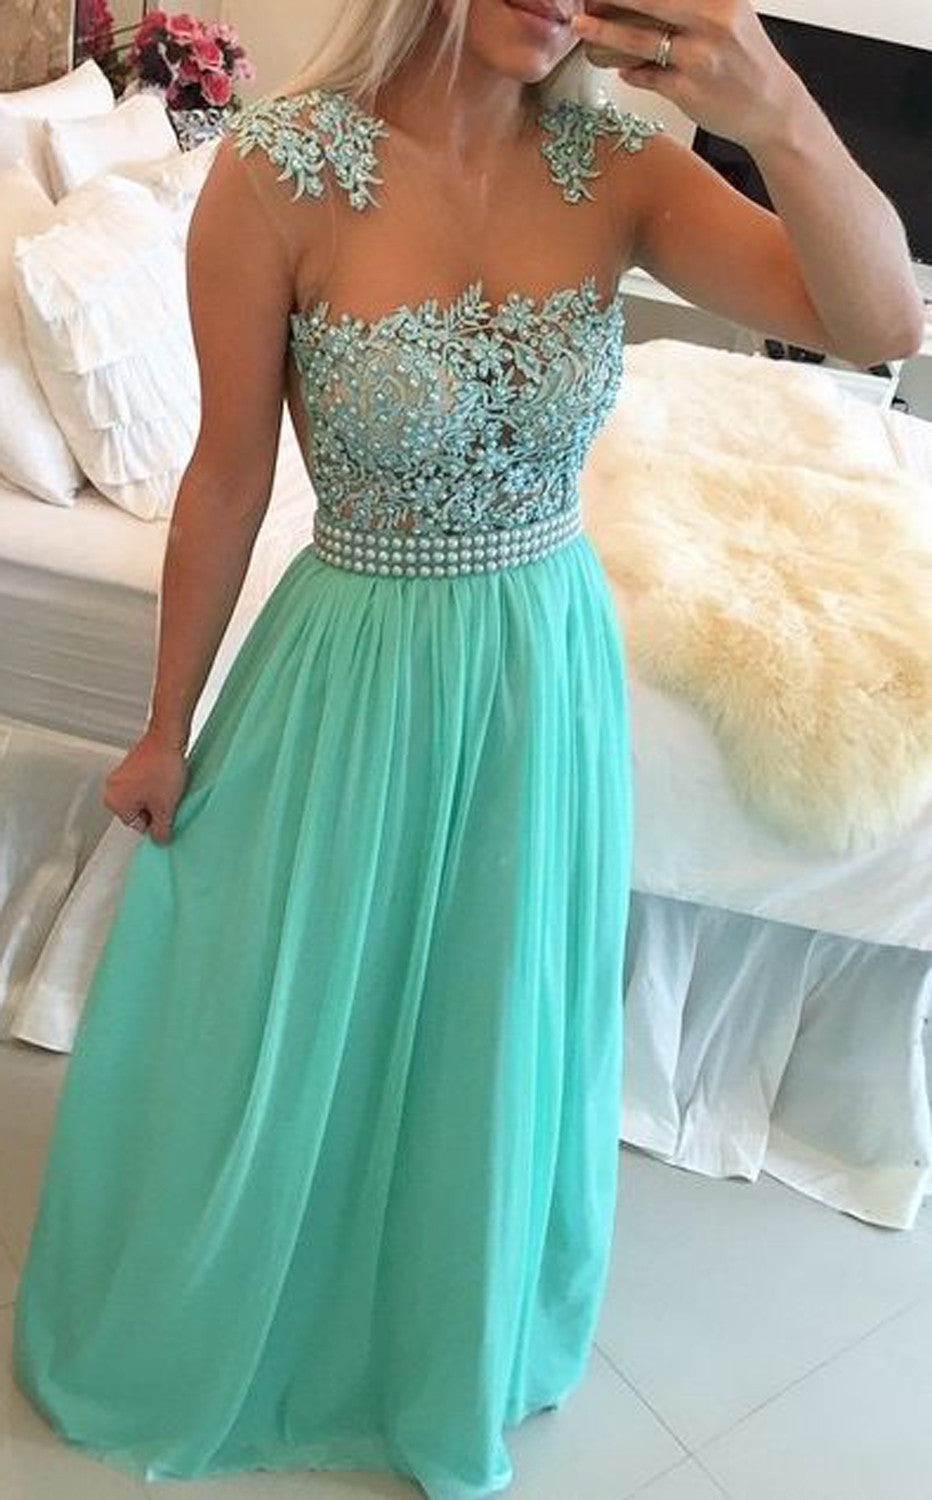 Cute Mint Green Poofy Prom Dress Floral Flower Lace Illusion Neckline - MyBodiArt.com